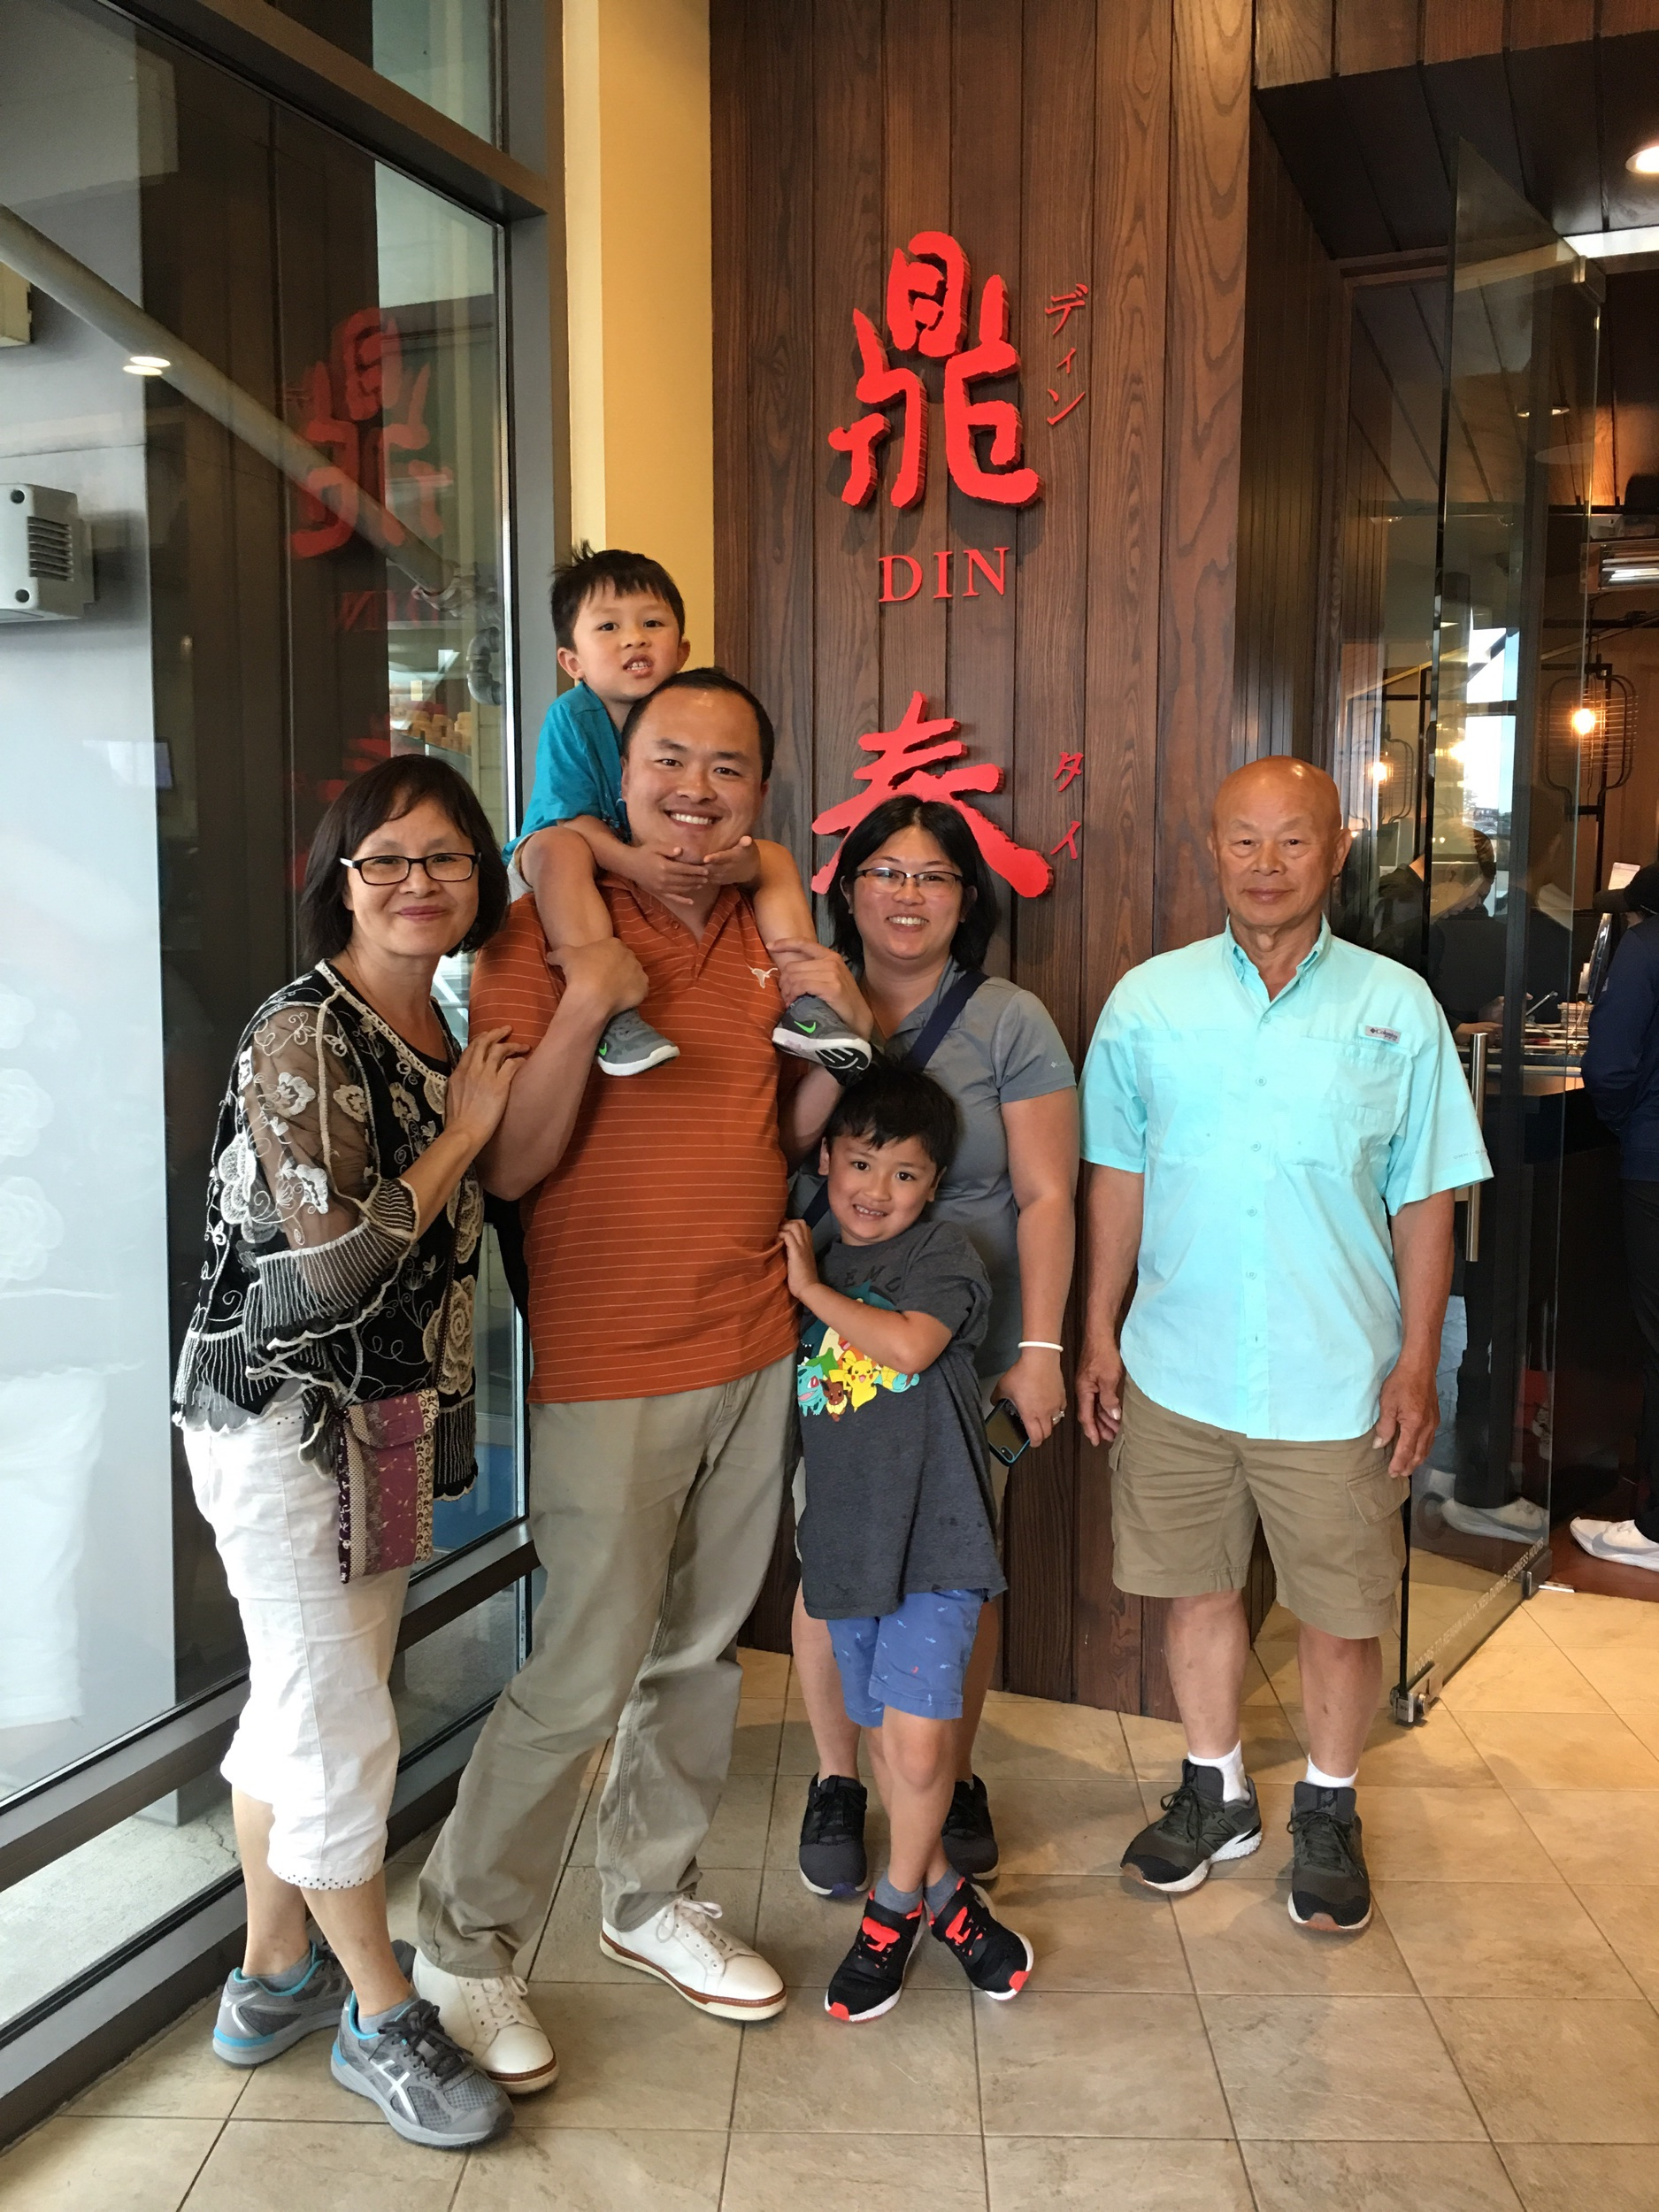 Din Tai Fung for lunch